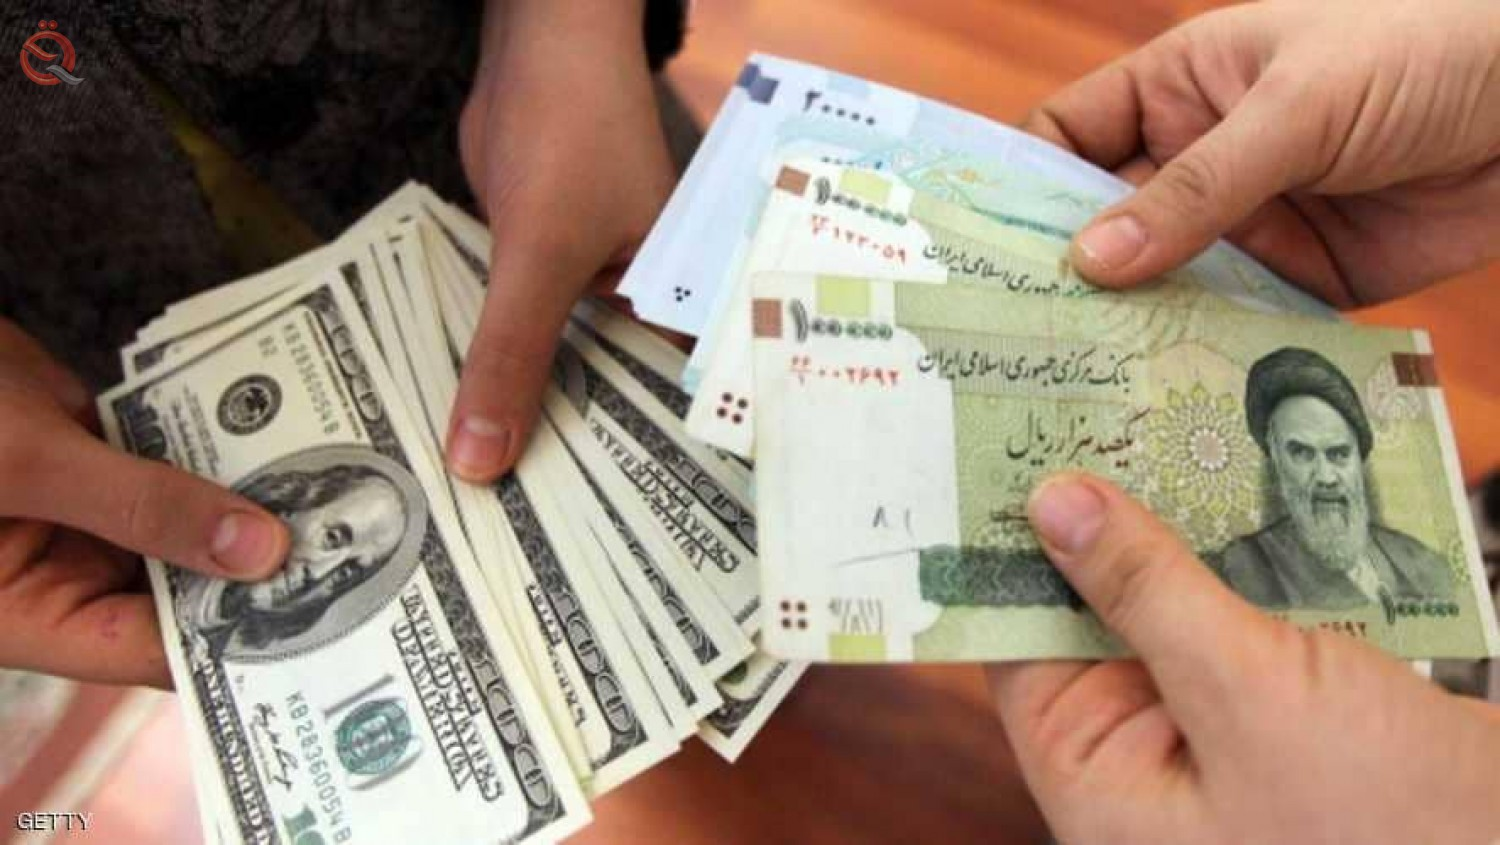 Iran's central bank plans to delete 4 zeroes from the currency 9866